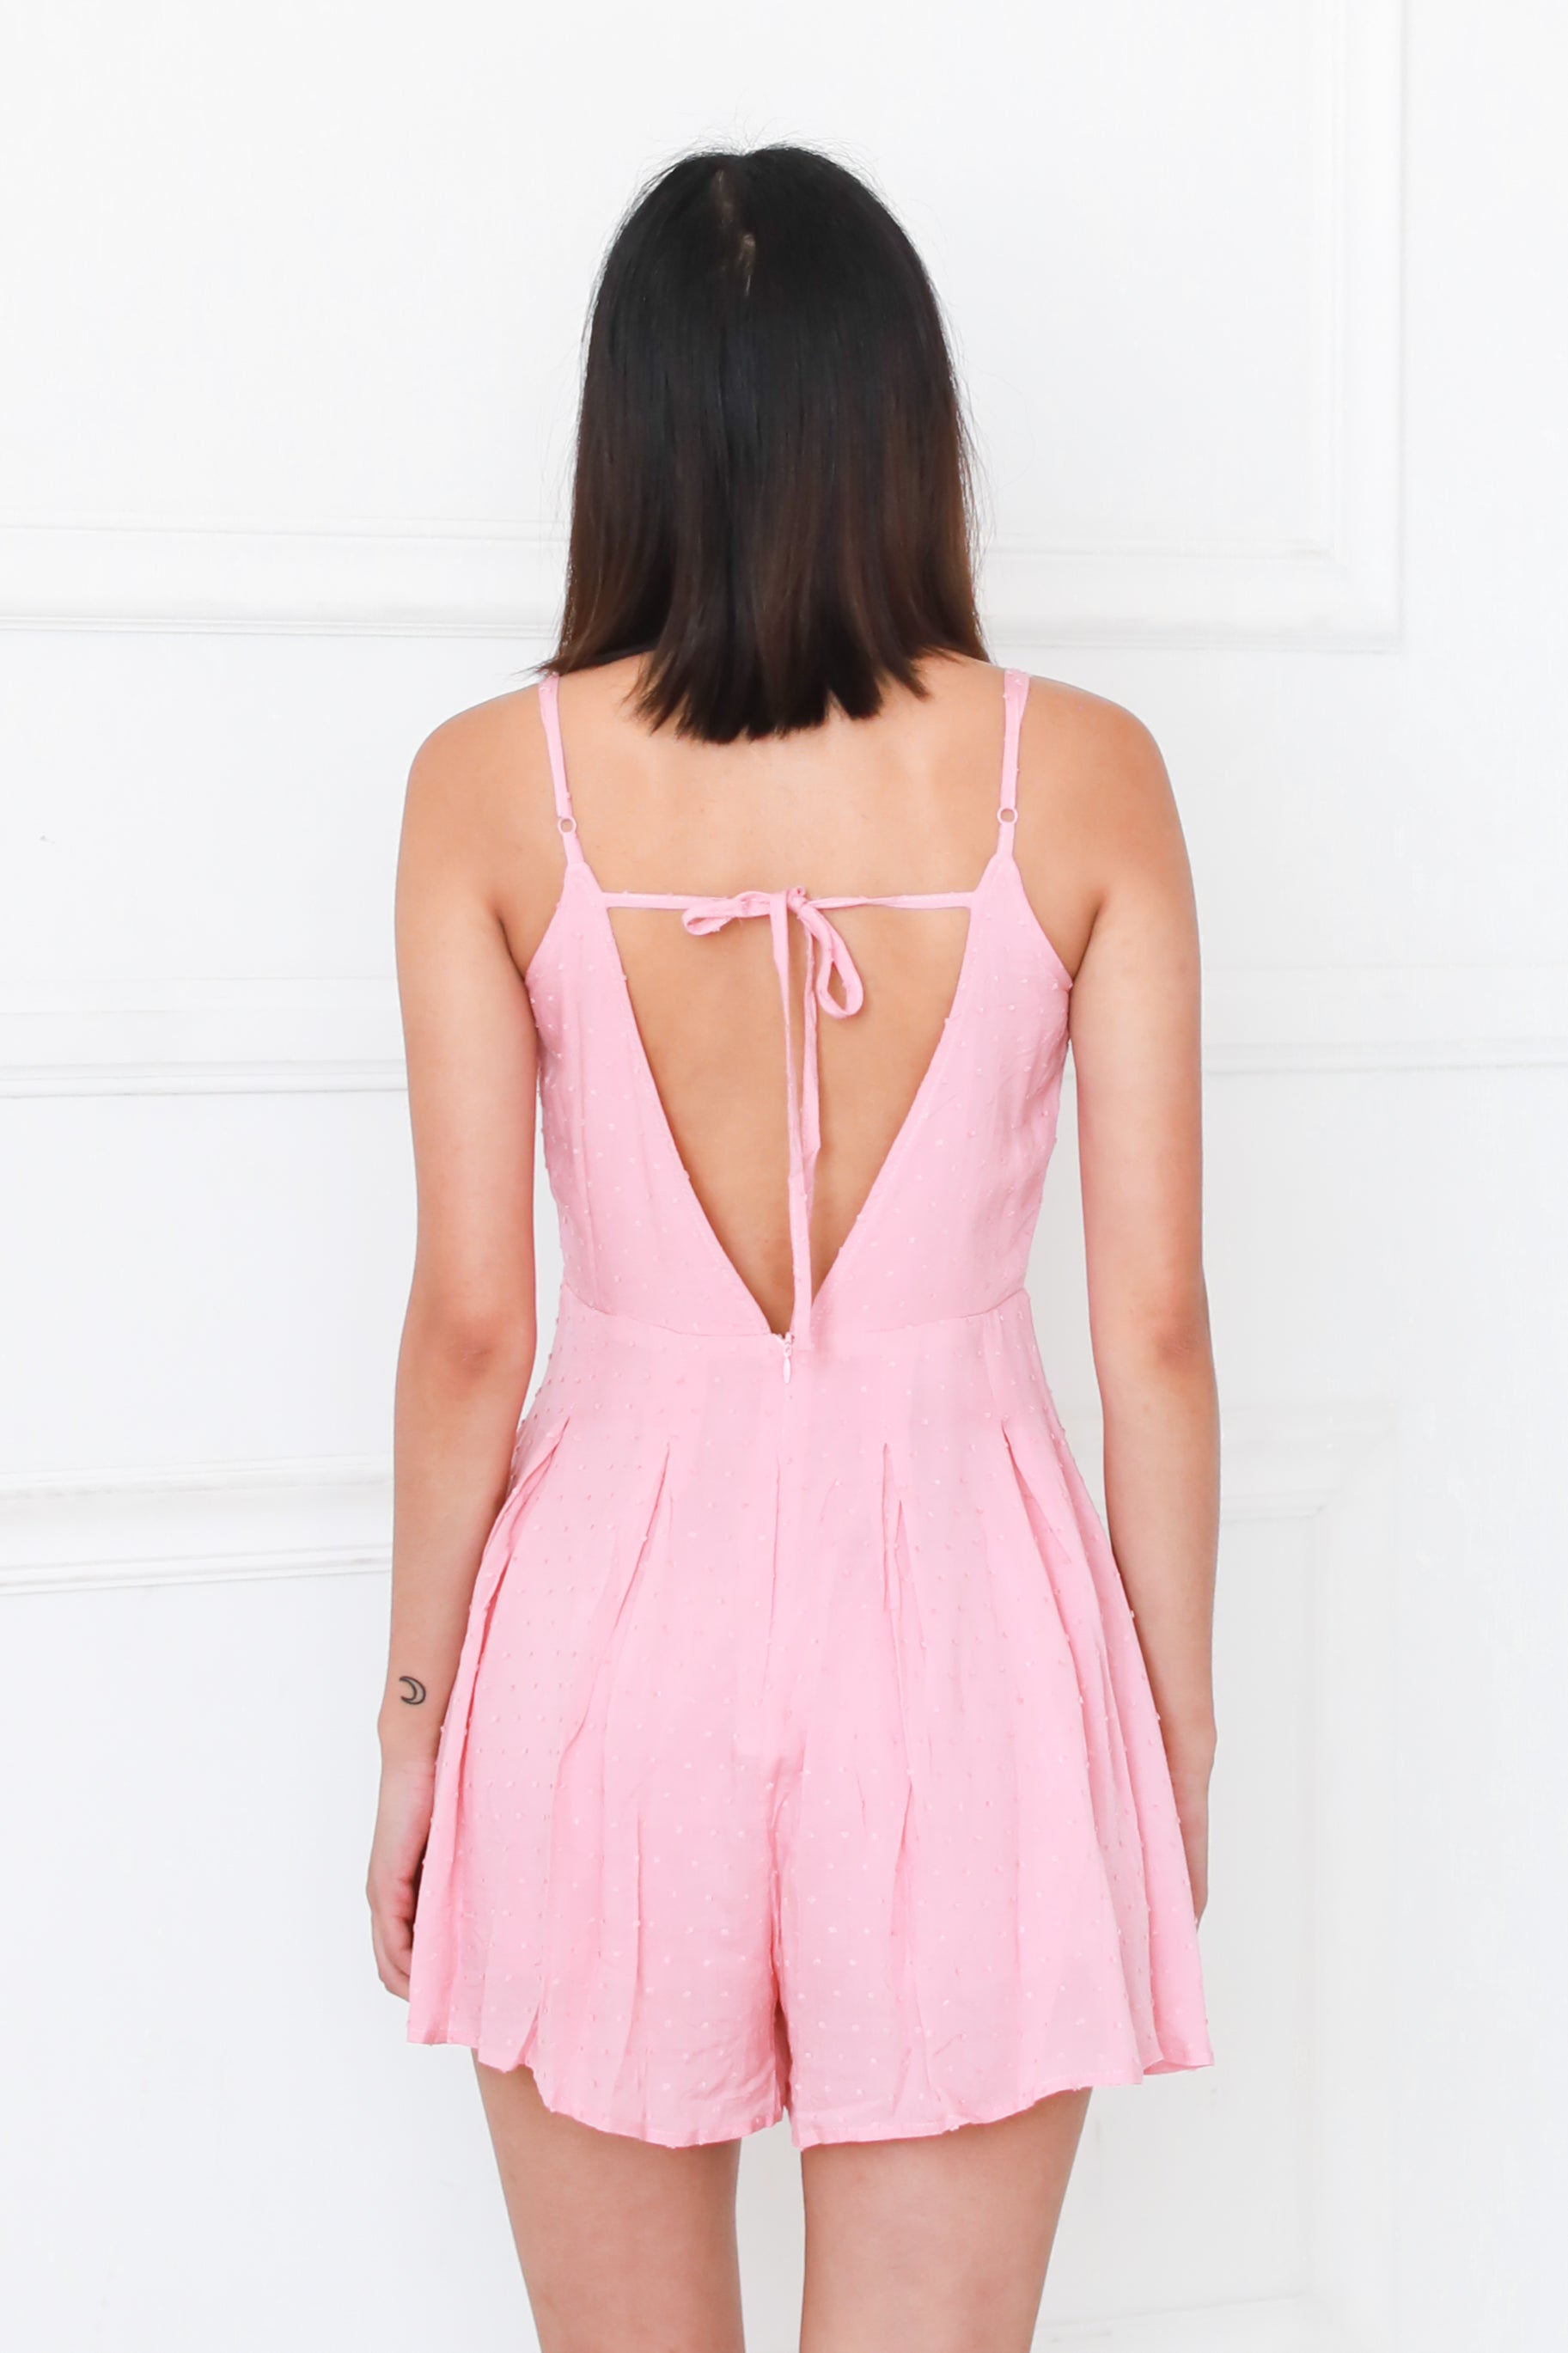 MON AMOUR PINK ROMPER